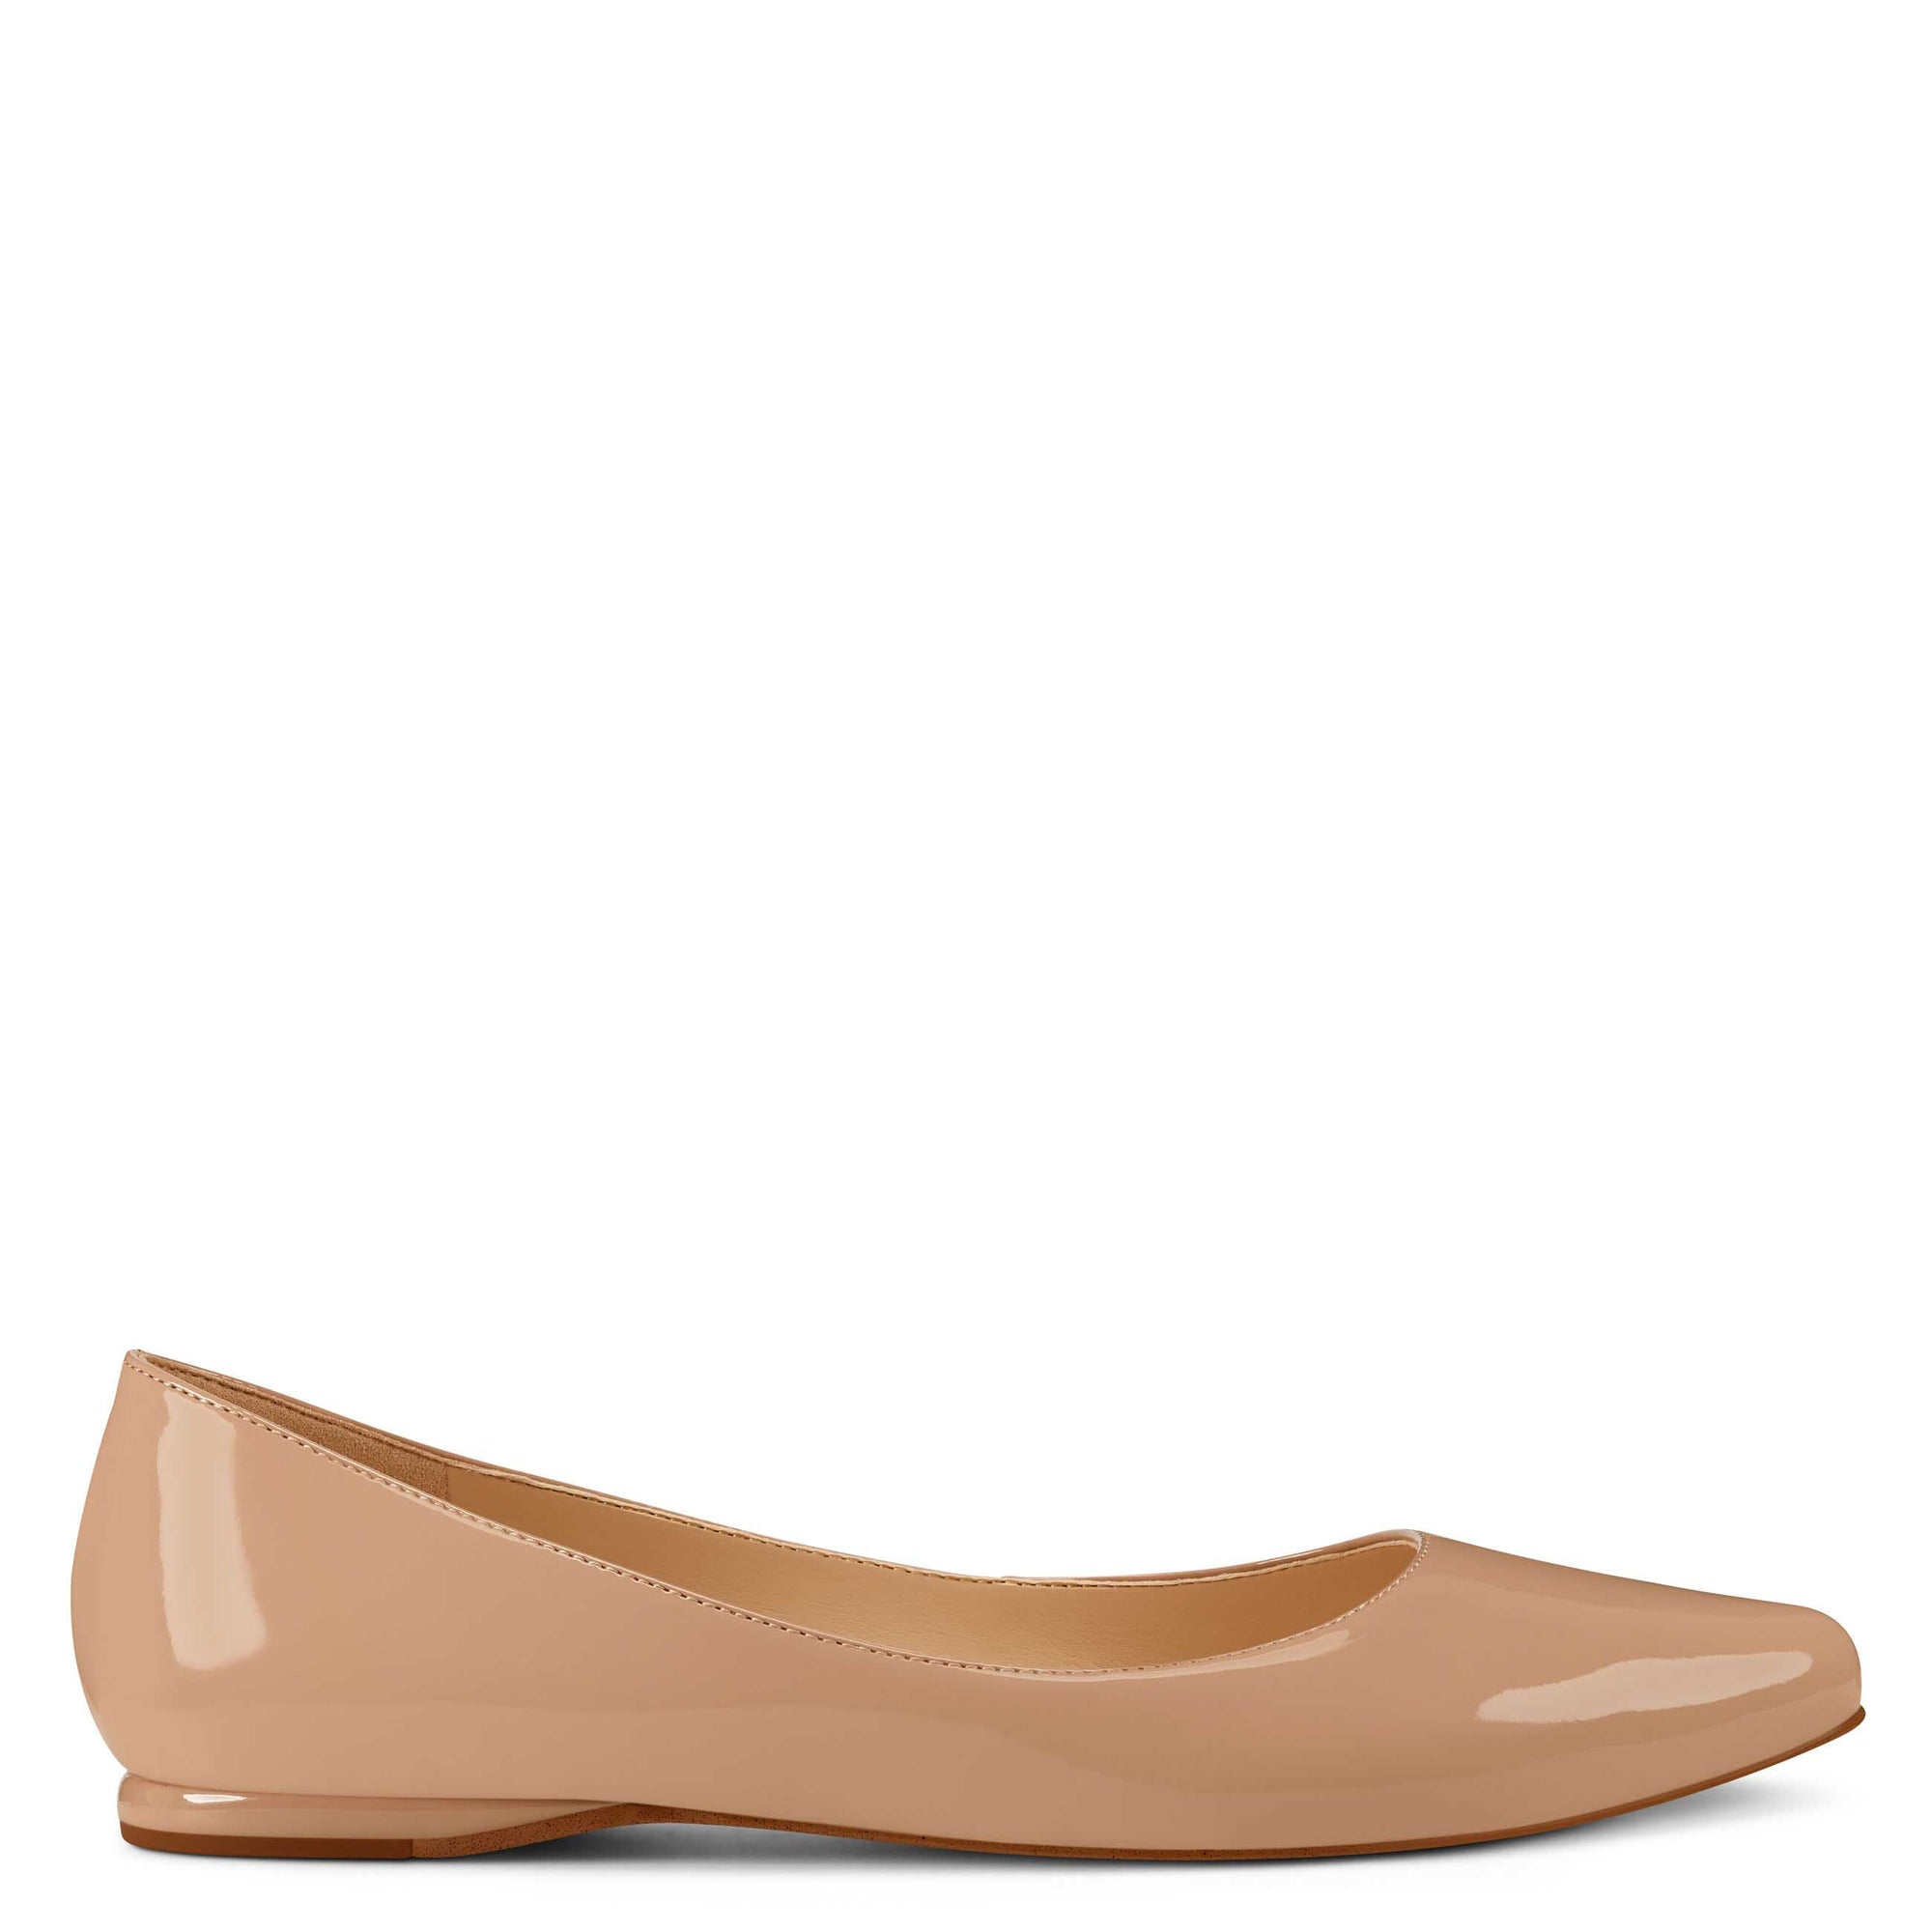 Speakup Almond Toe Flats